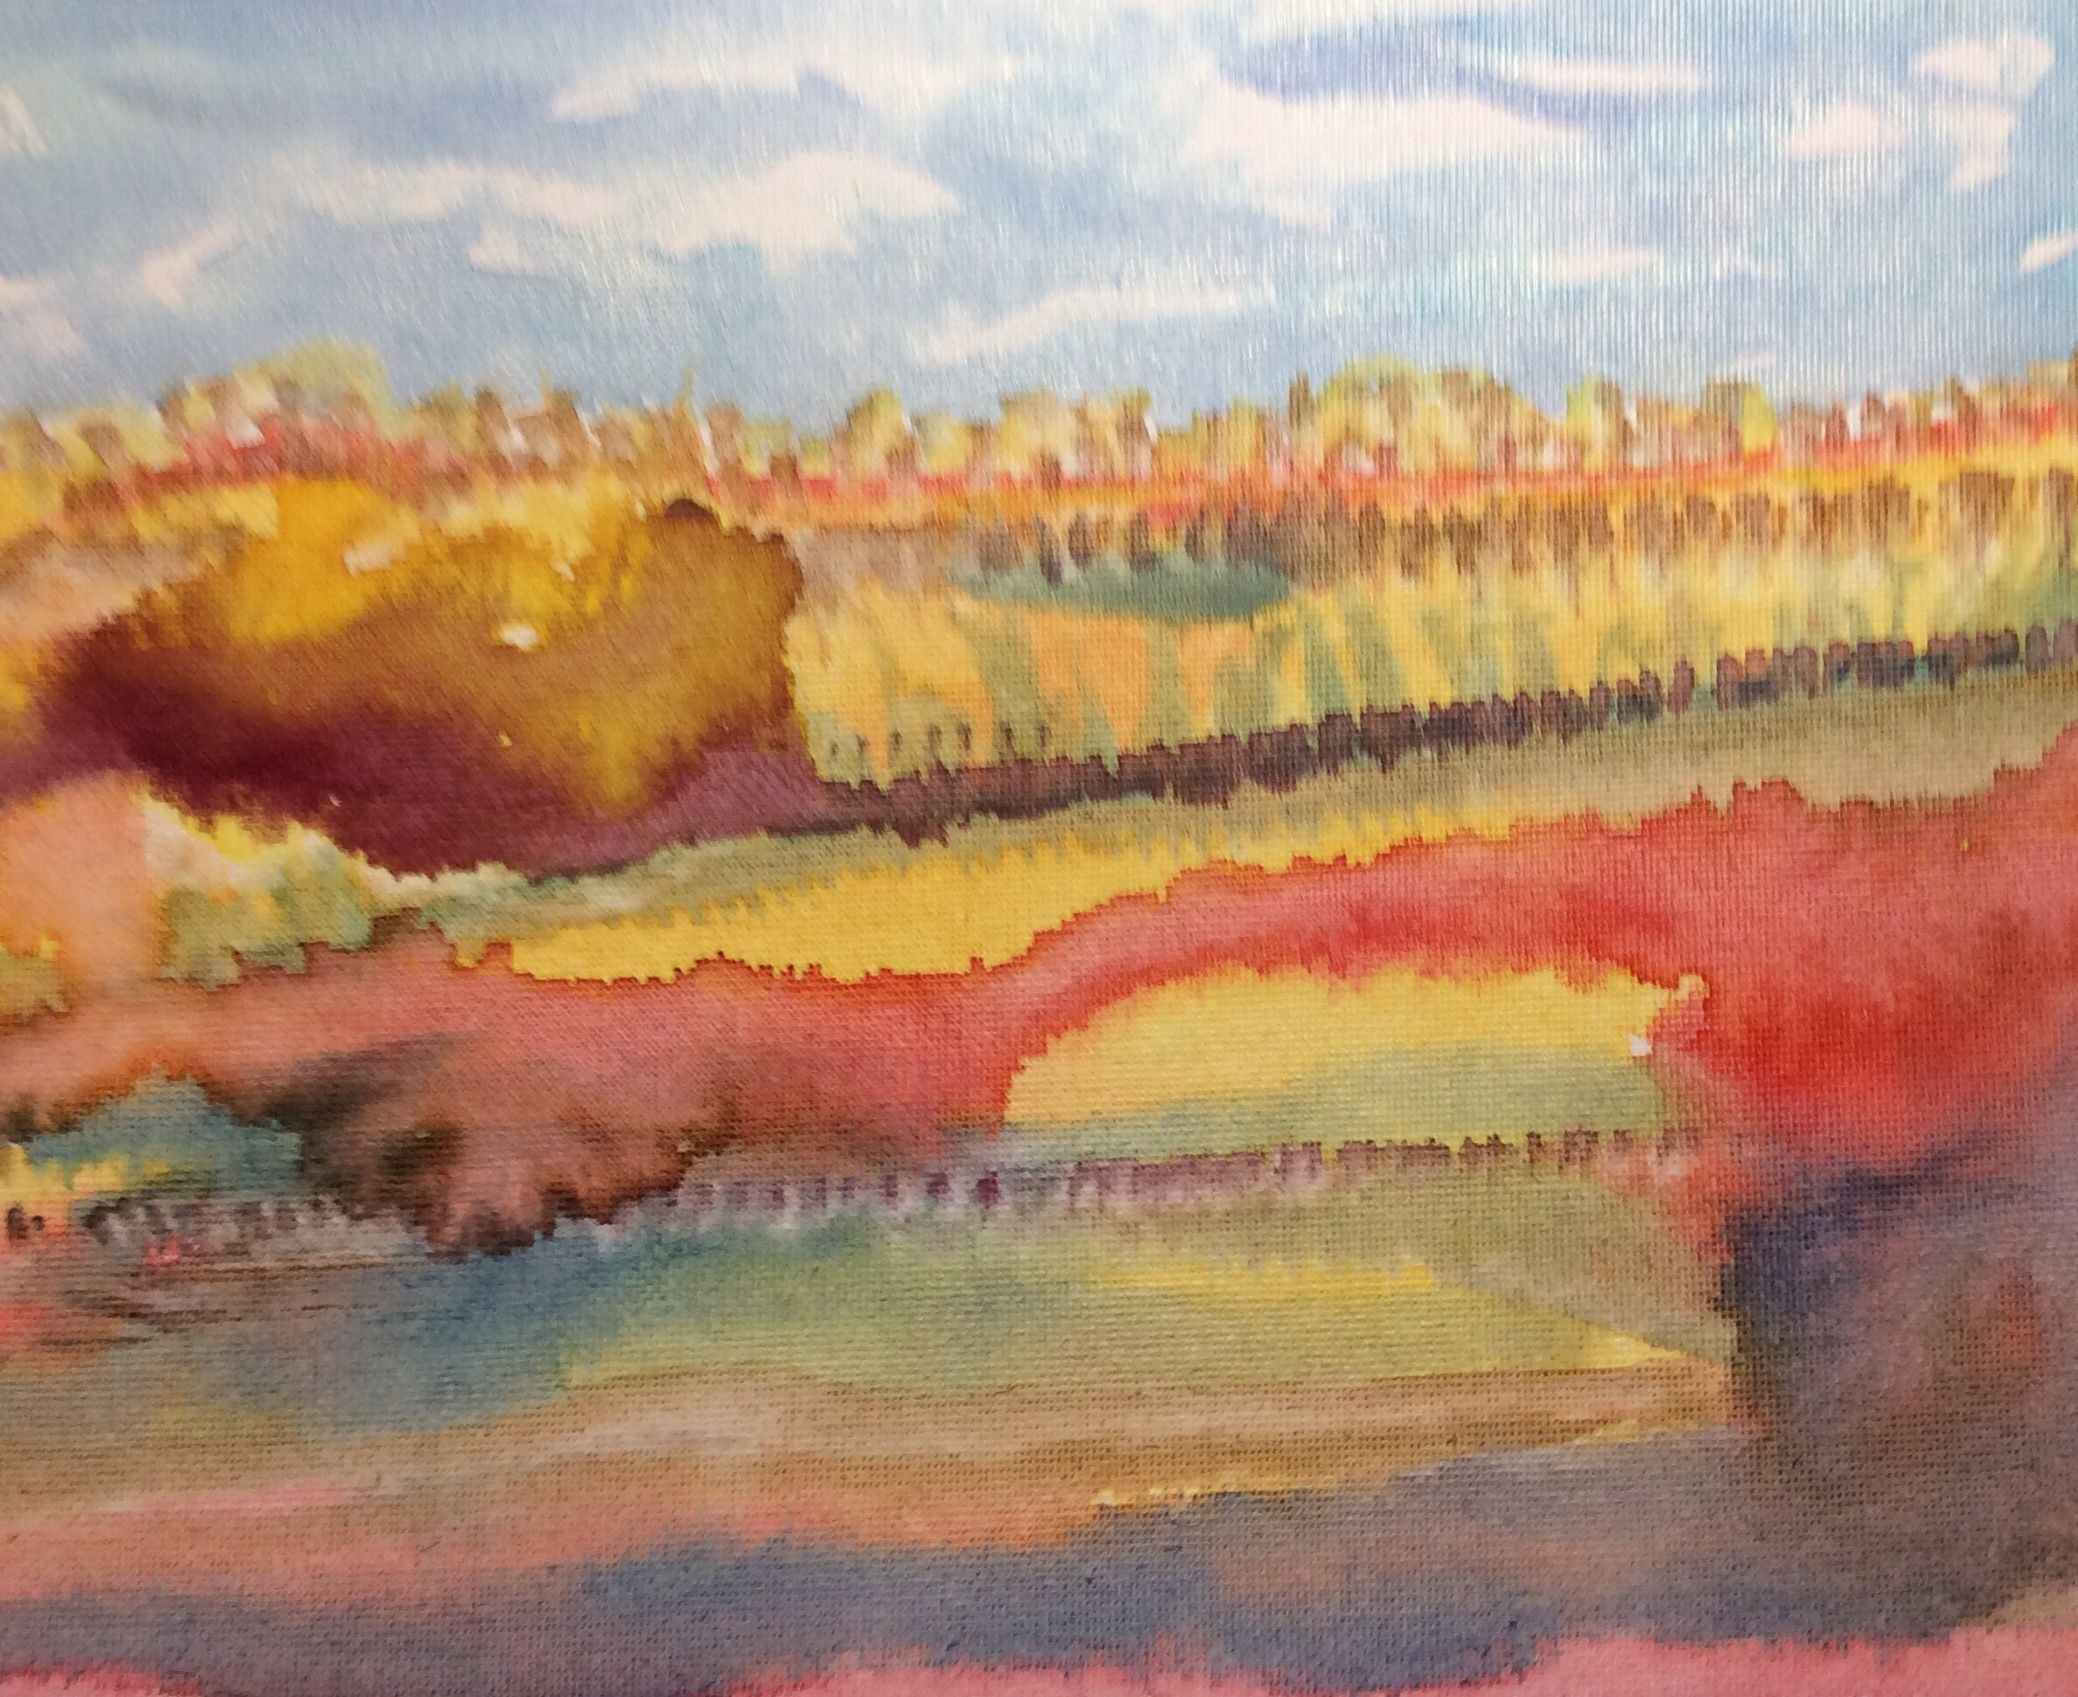 Watercolor Landscape Painting On Canvas Board 8 X 10 Inches Quiet